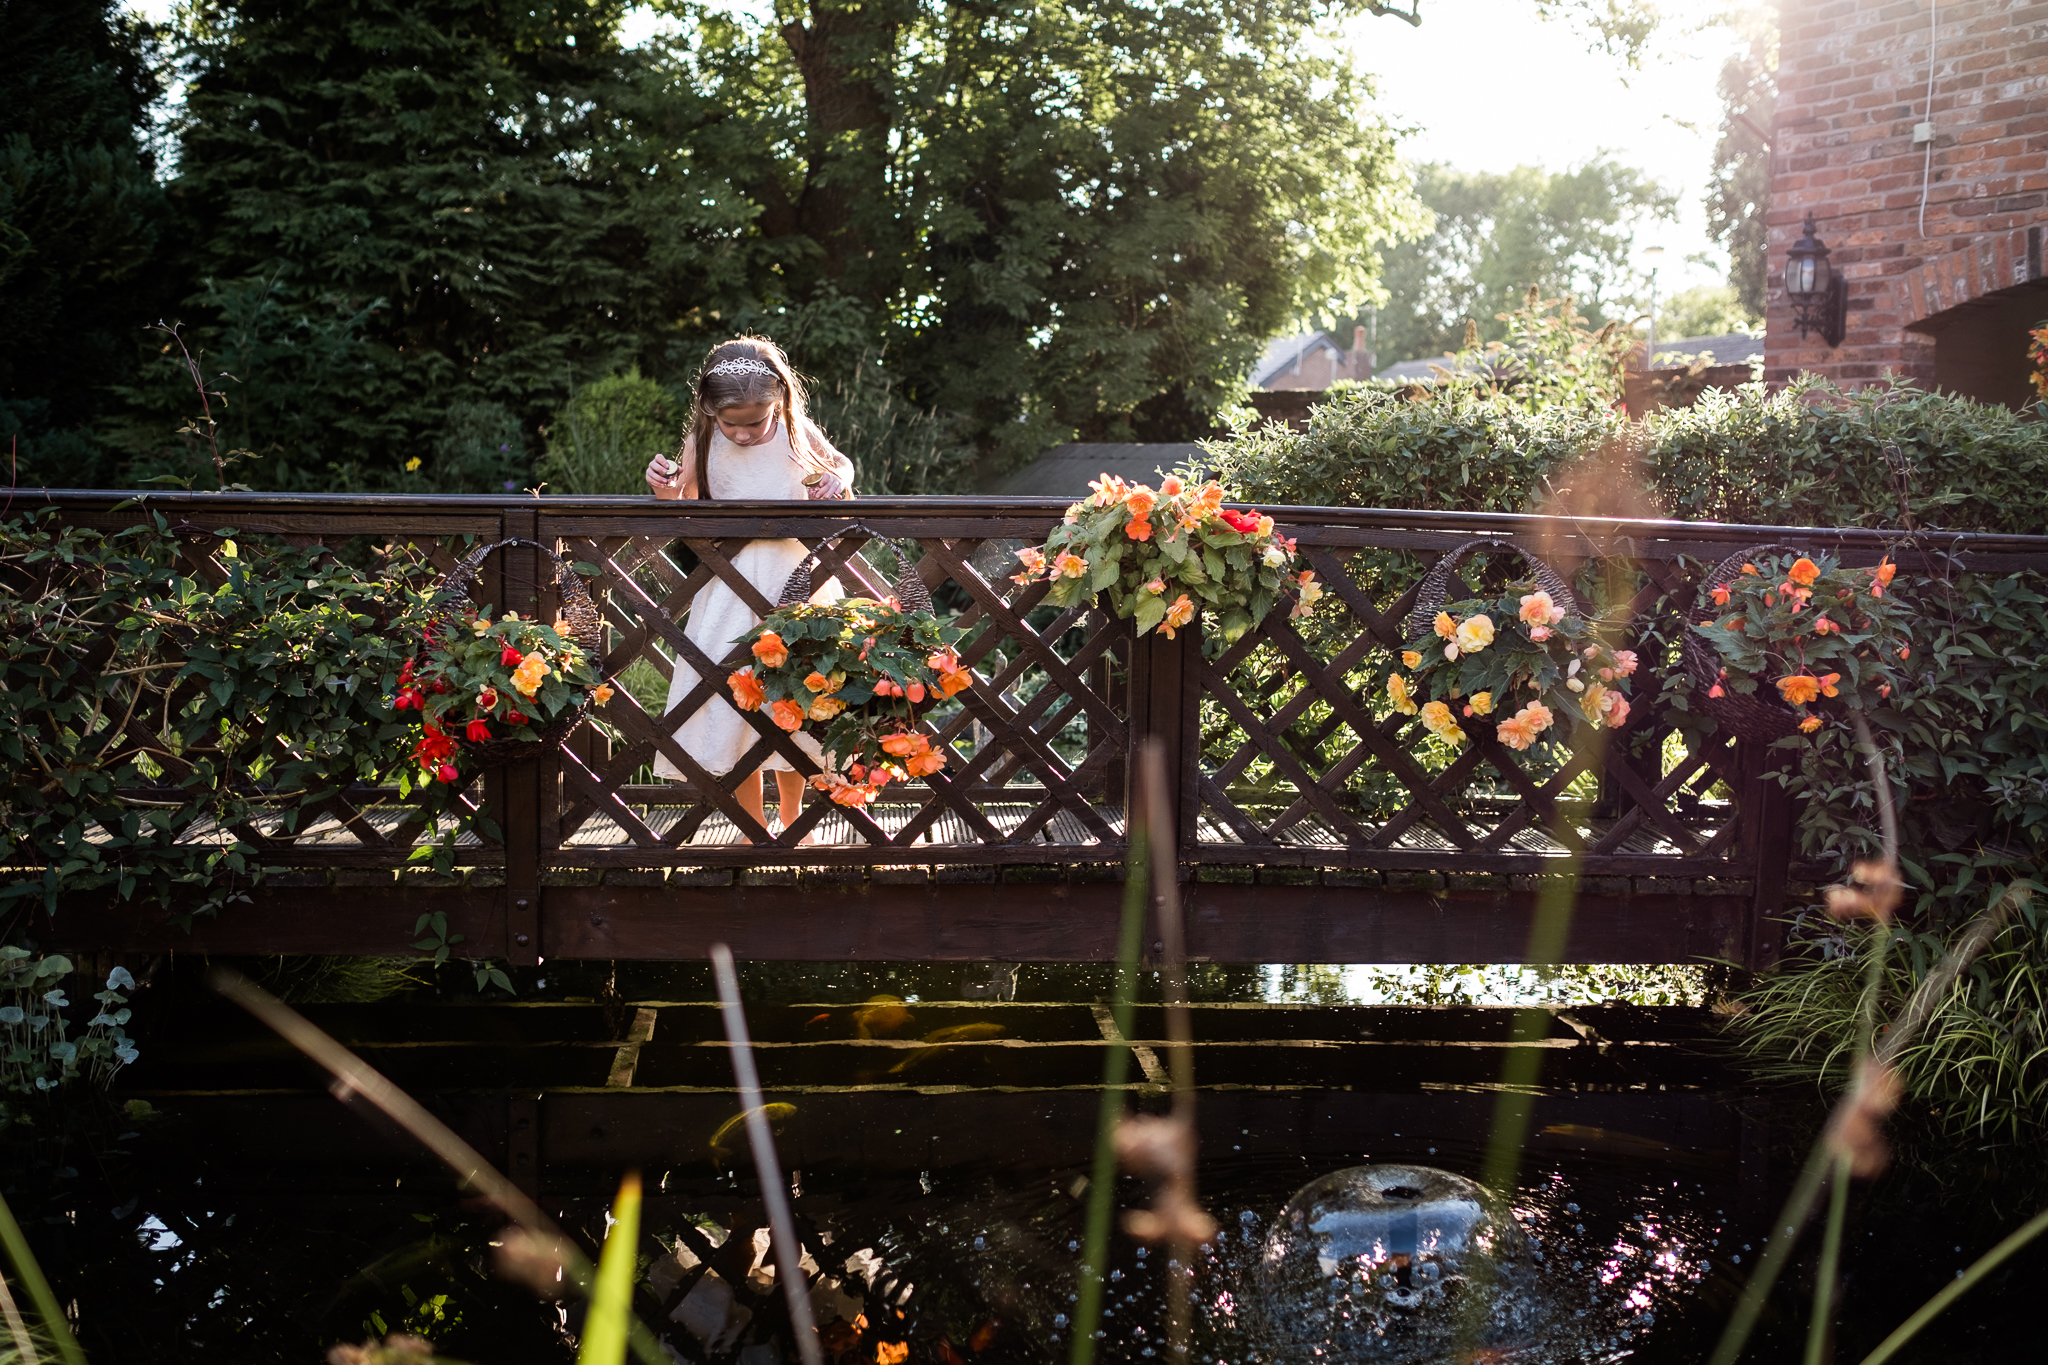 Relaxed Summer Wedding at The Manor, Cheadle Guitarist Musicians Vinyl-44.jpg